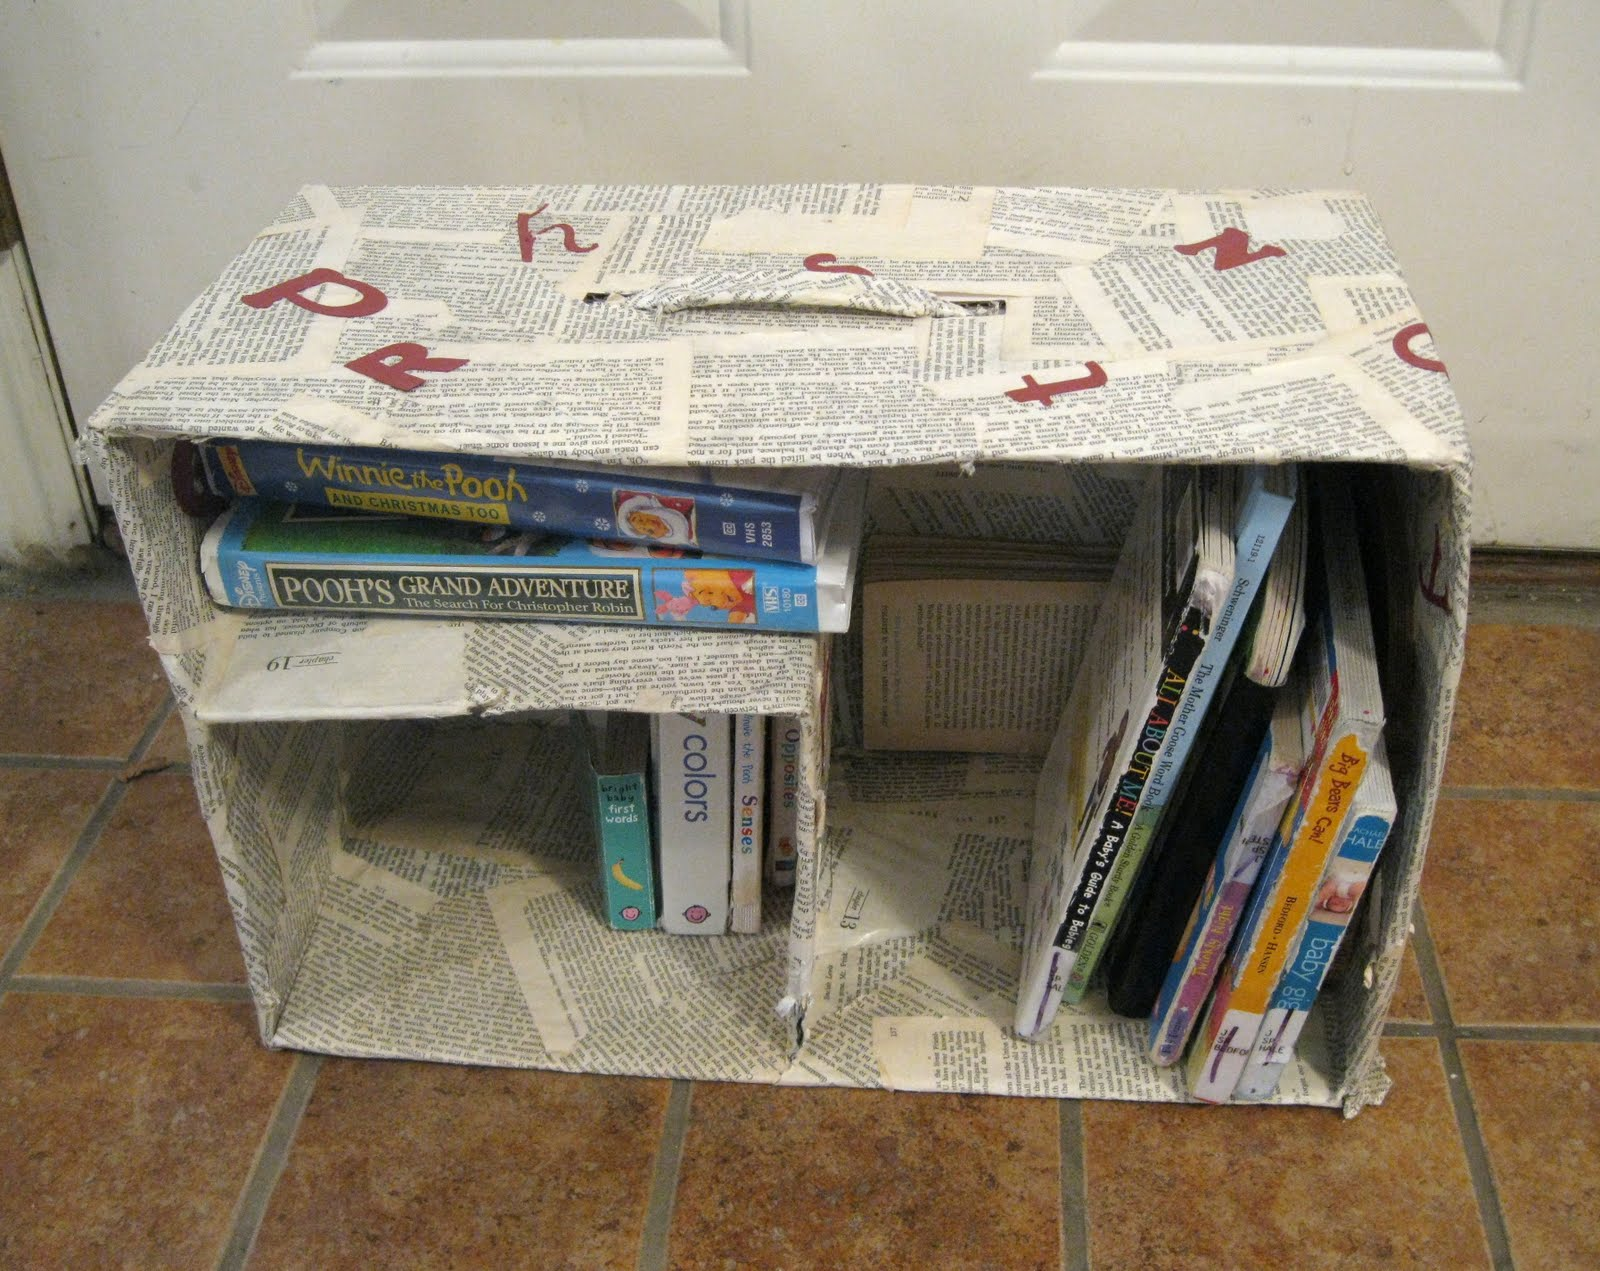 Read Book Shelf diy book shelf - peek-a-boo pages - sew something special